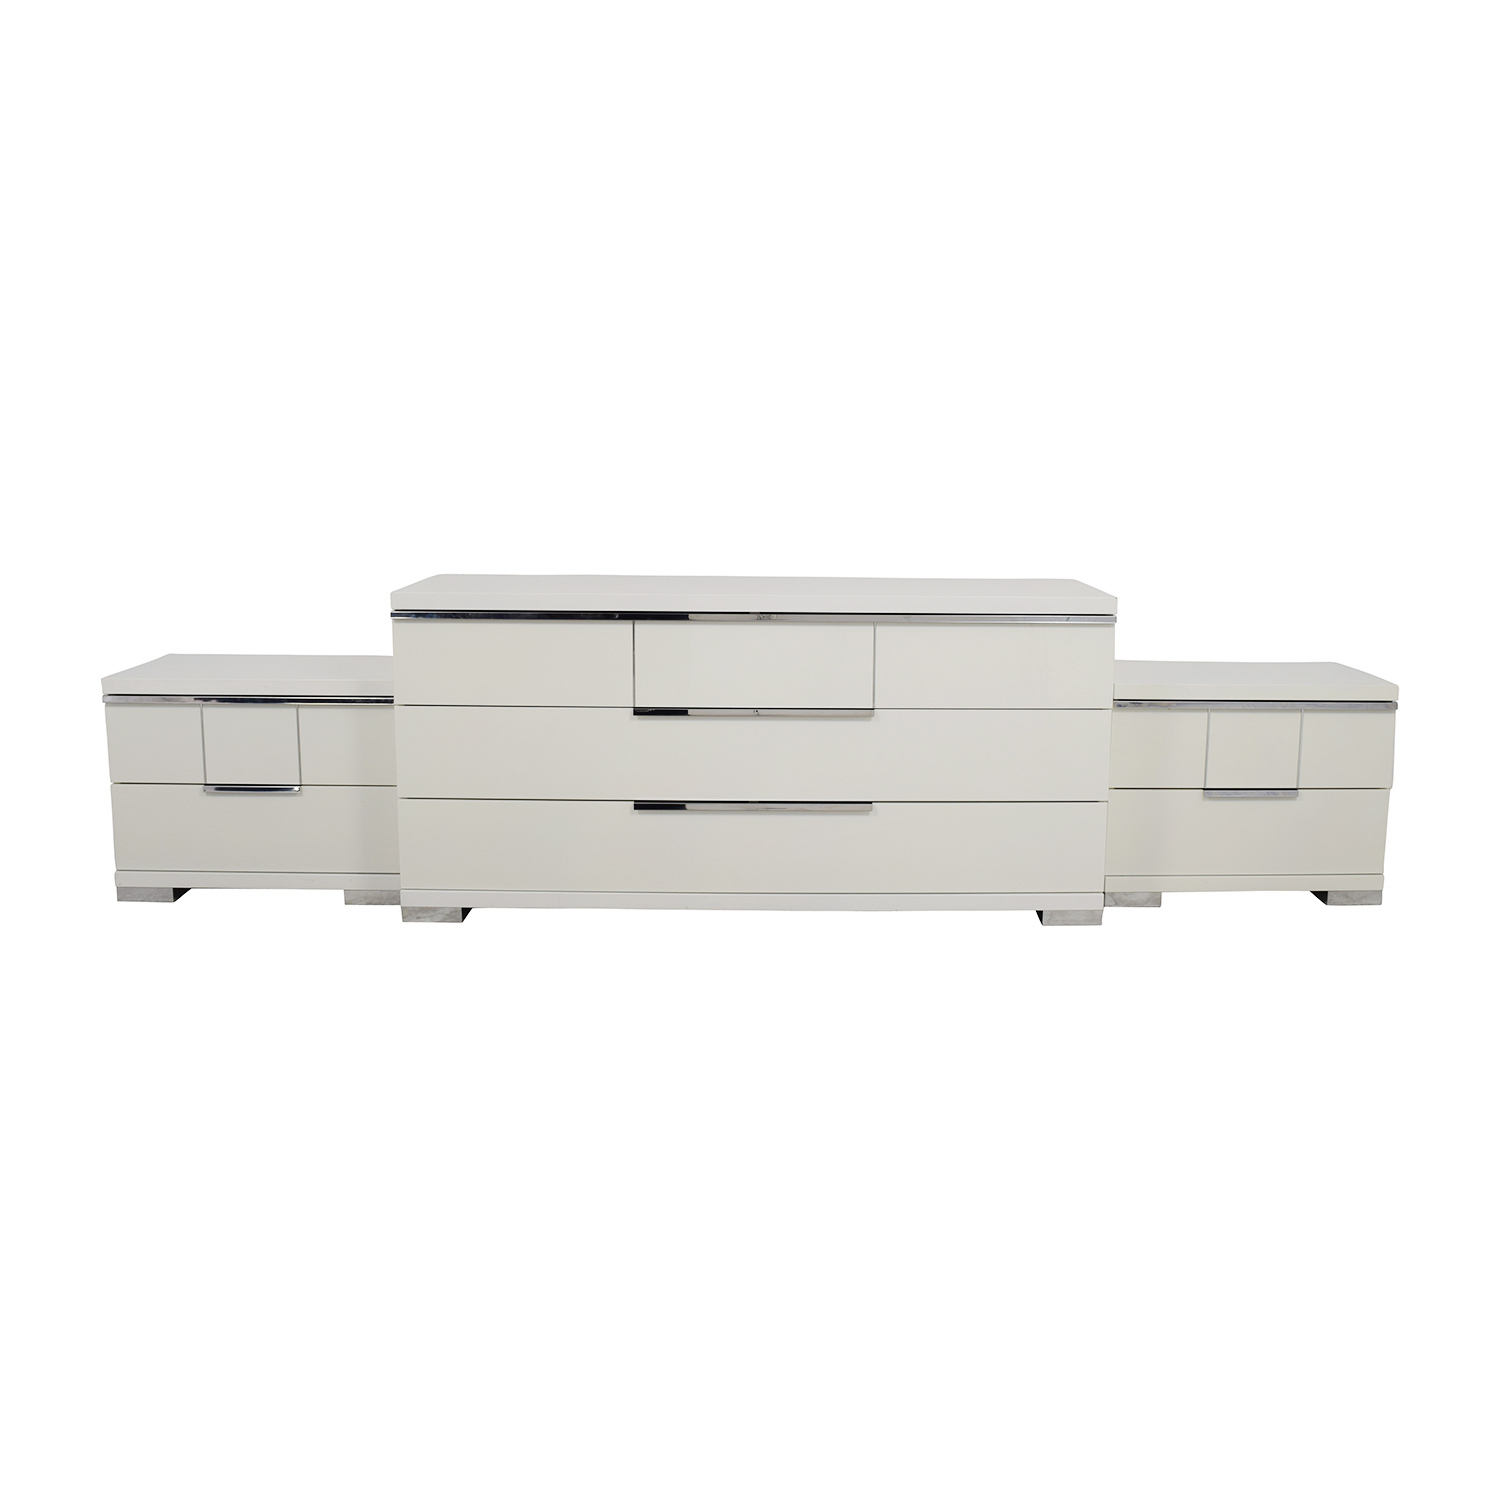 ALF Uno SPA Three-Piece Modern Italian White Dresser Set ALF Uno S.P.A